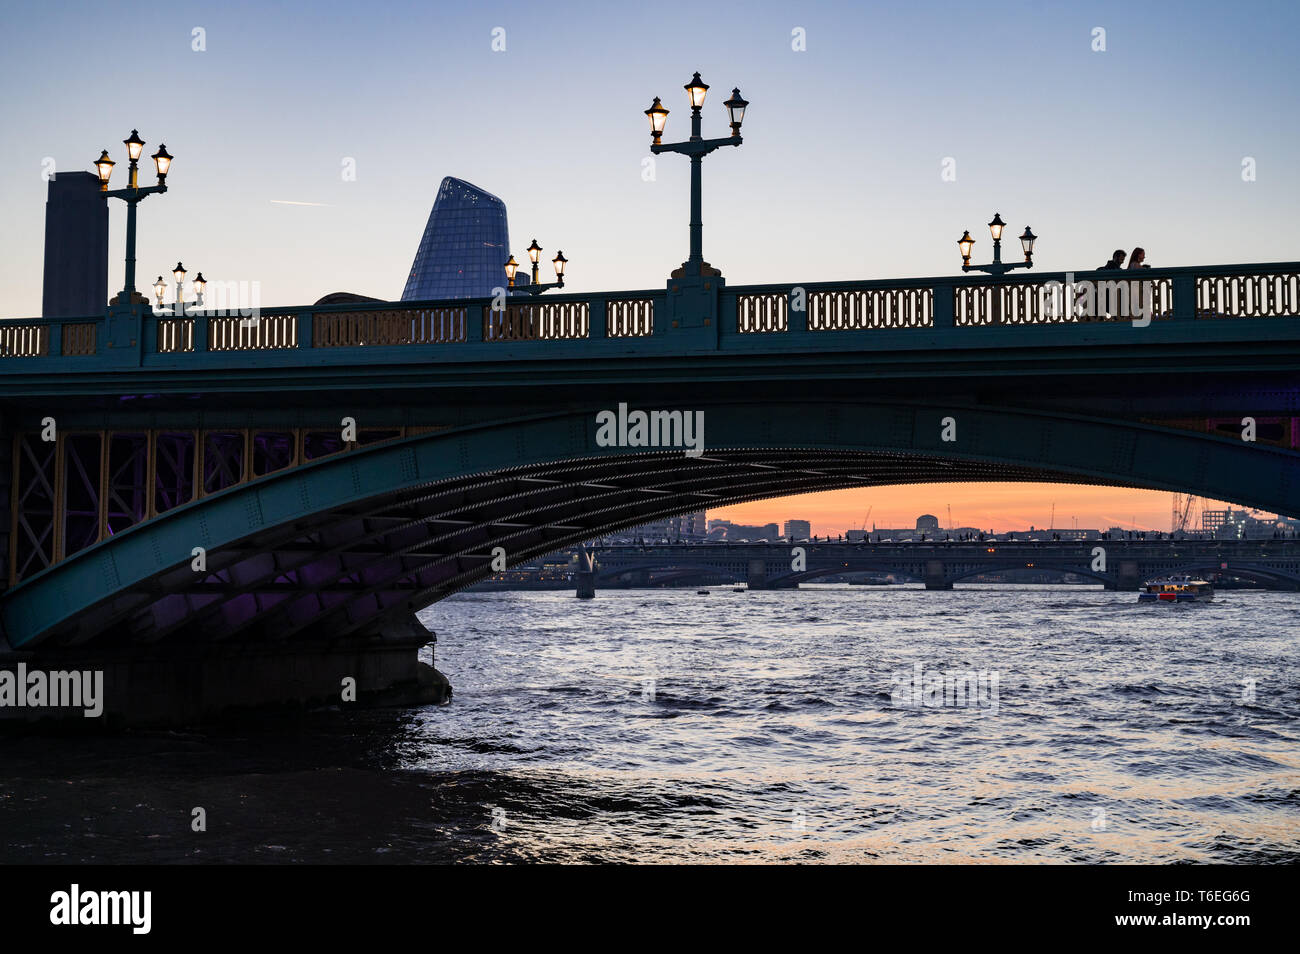 Southwark Bridge, London - Stock Image